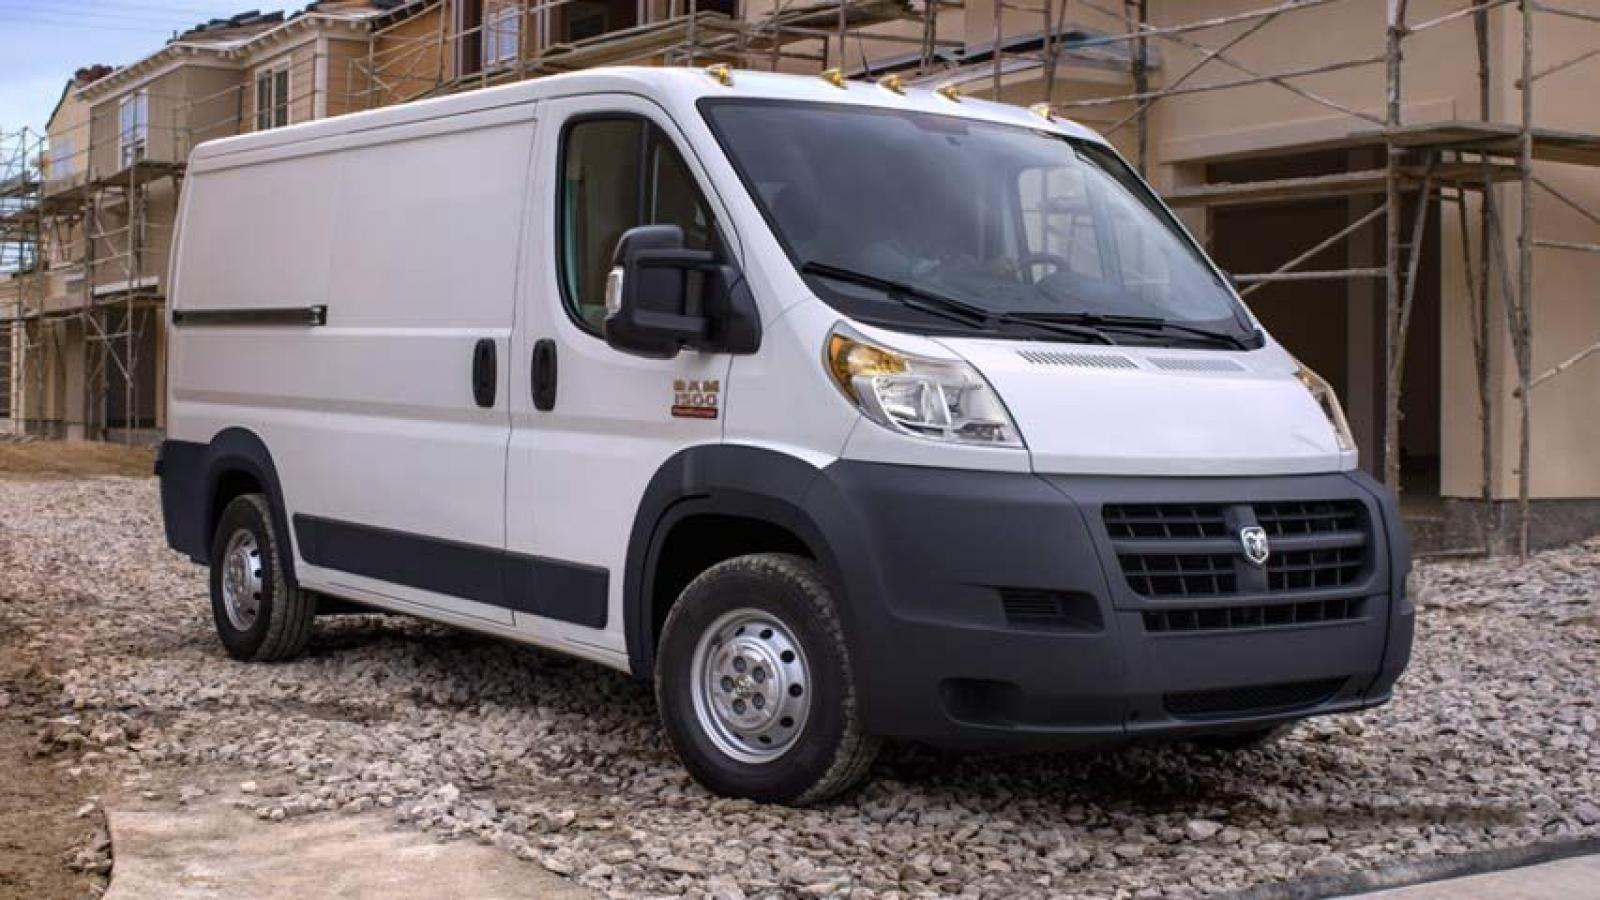 2014 ram promaster window van information and photos zombiedrive. Black Bedroom Furniture Sets. Home Design Ideas